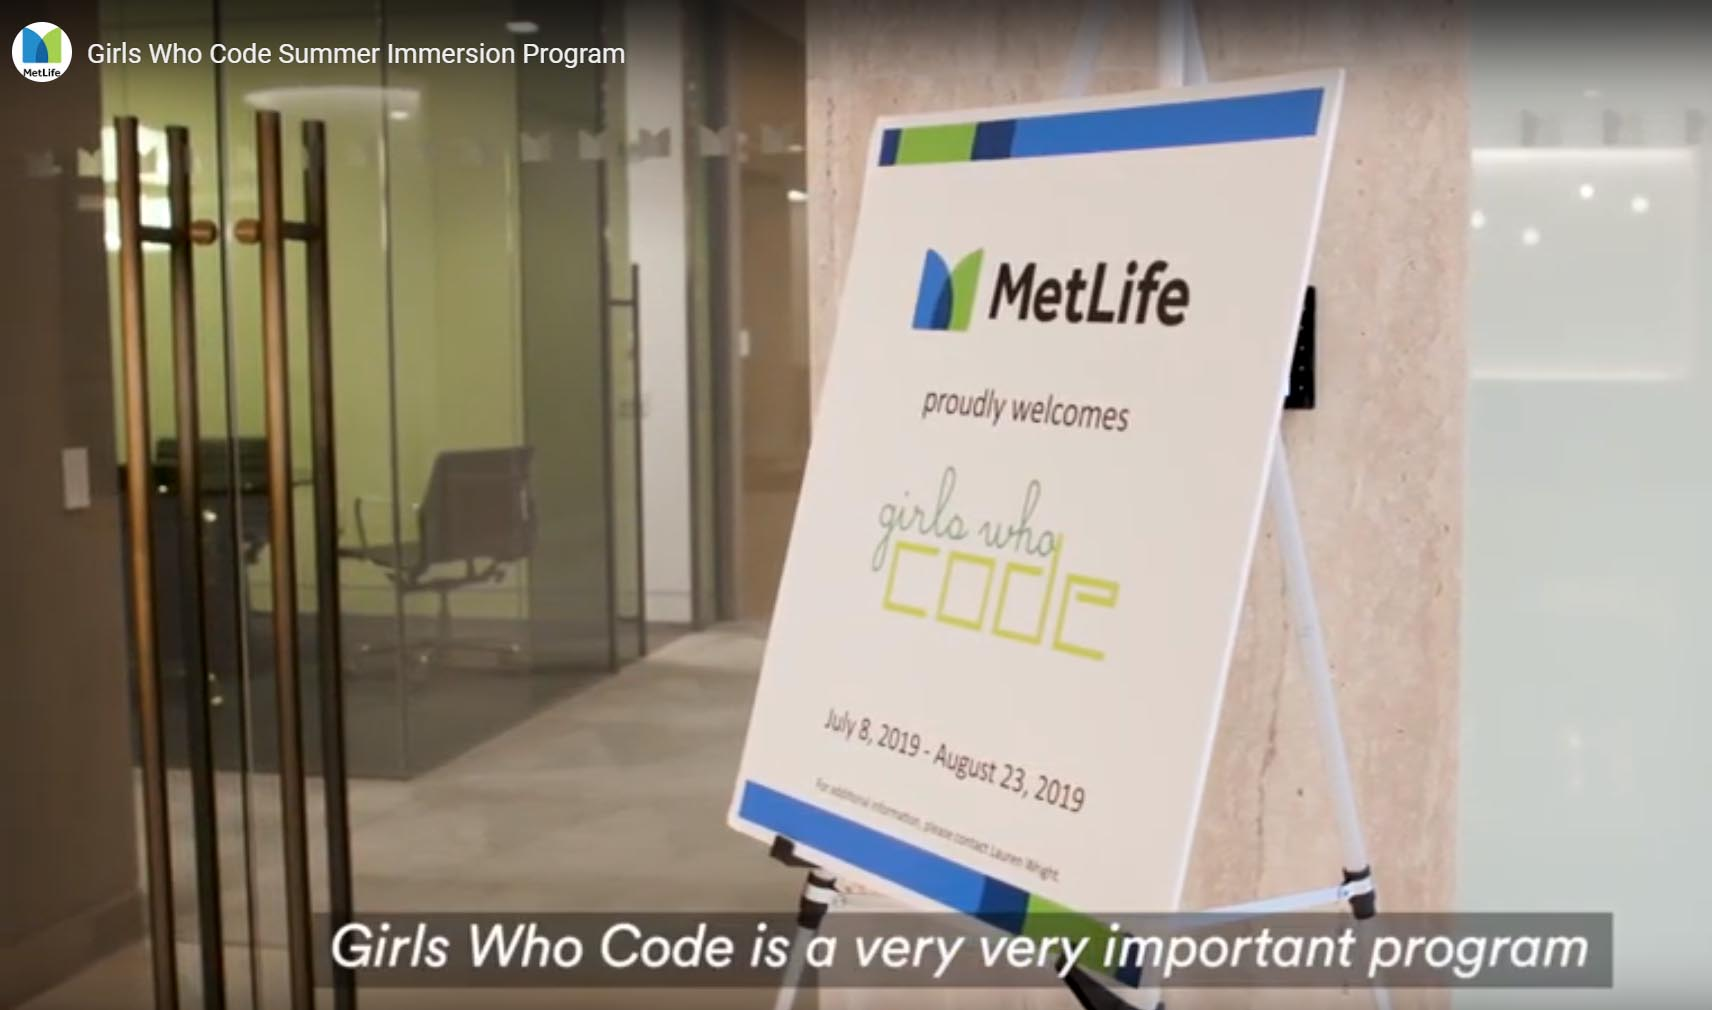 MetLife Girls Who Code Program participants thrilled with support